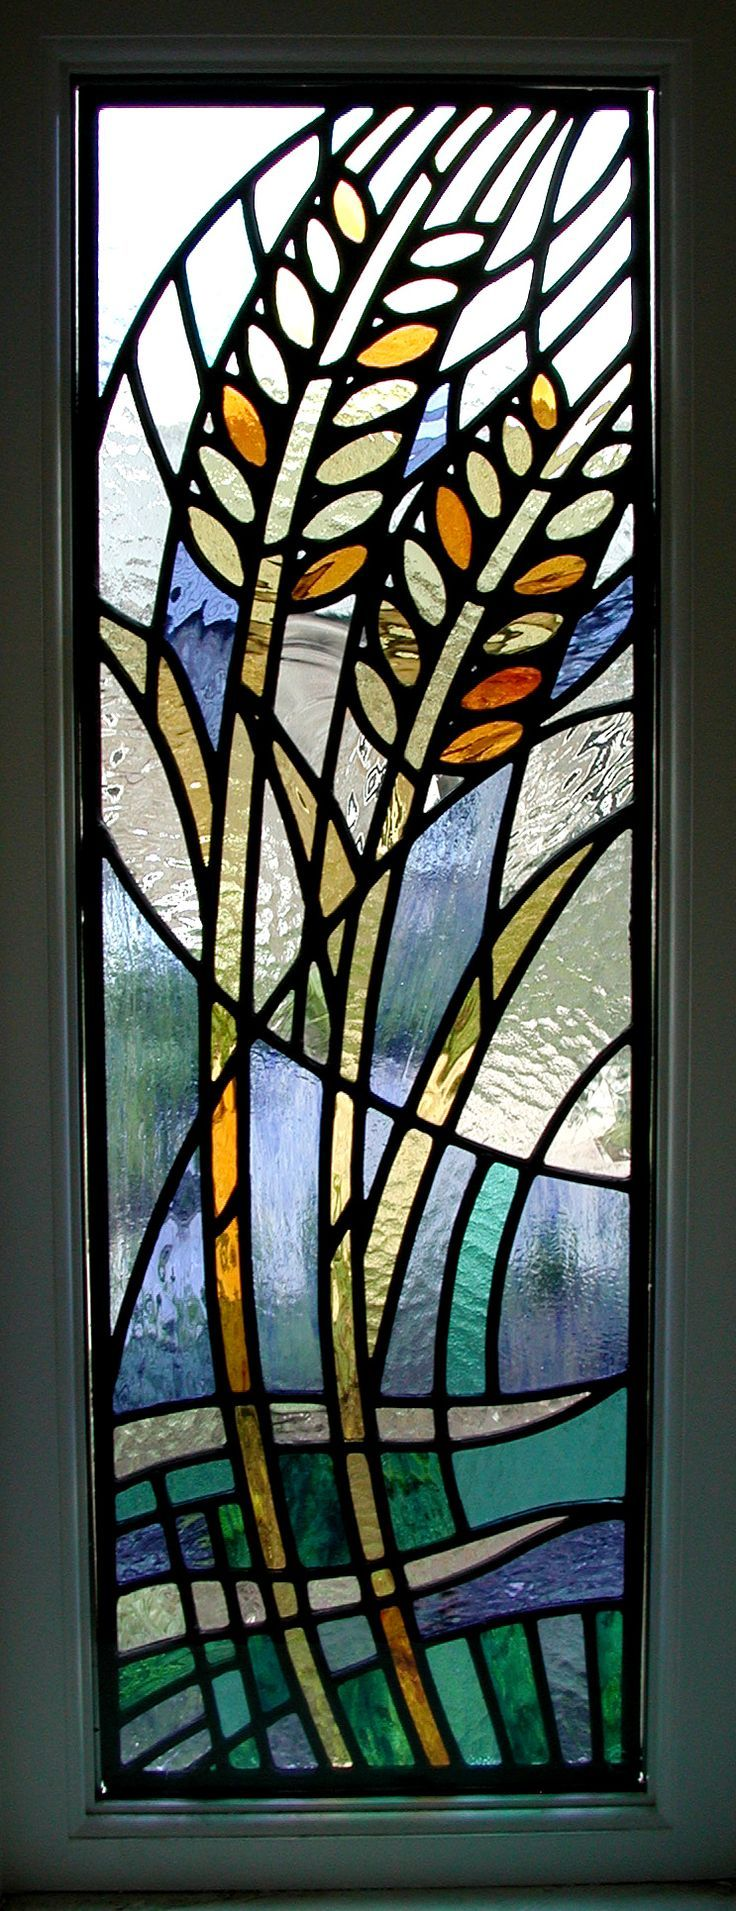 Barley window stained glass art faux stained glass